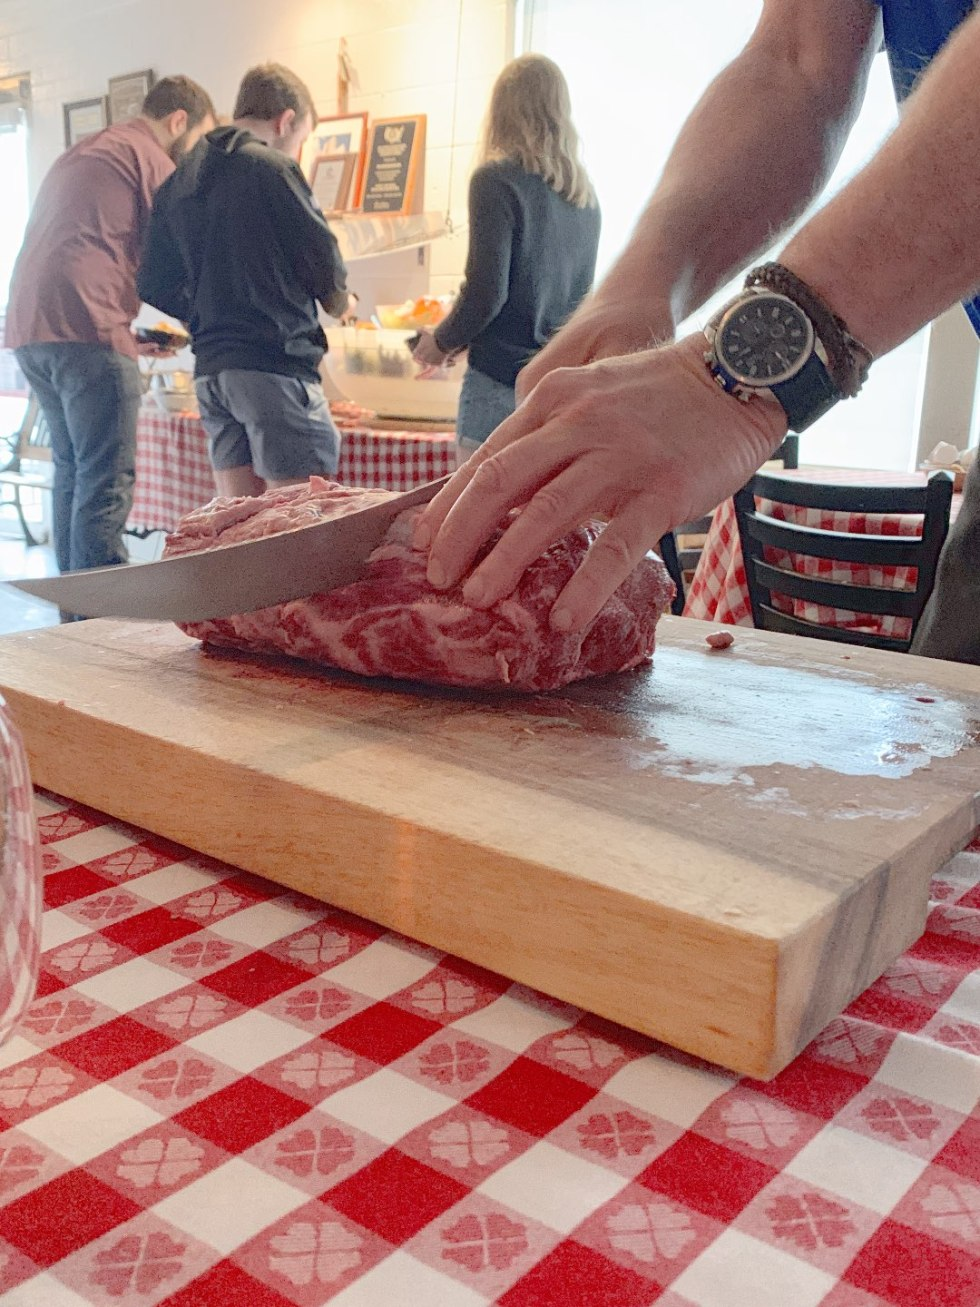 Top 5 Best Destination Restaurants in Eastern NC you Need to Try by popular North Carolina blog, I'm Fixin' To: image of meat being cut at the Beefmastor Inn.